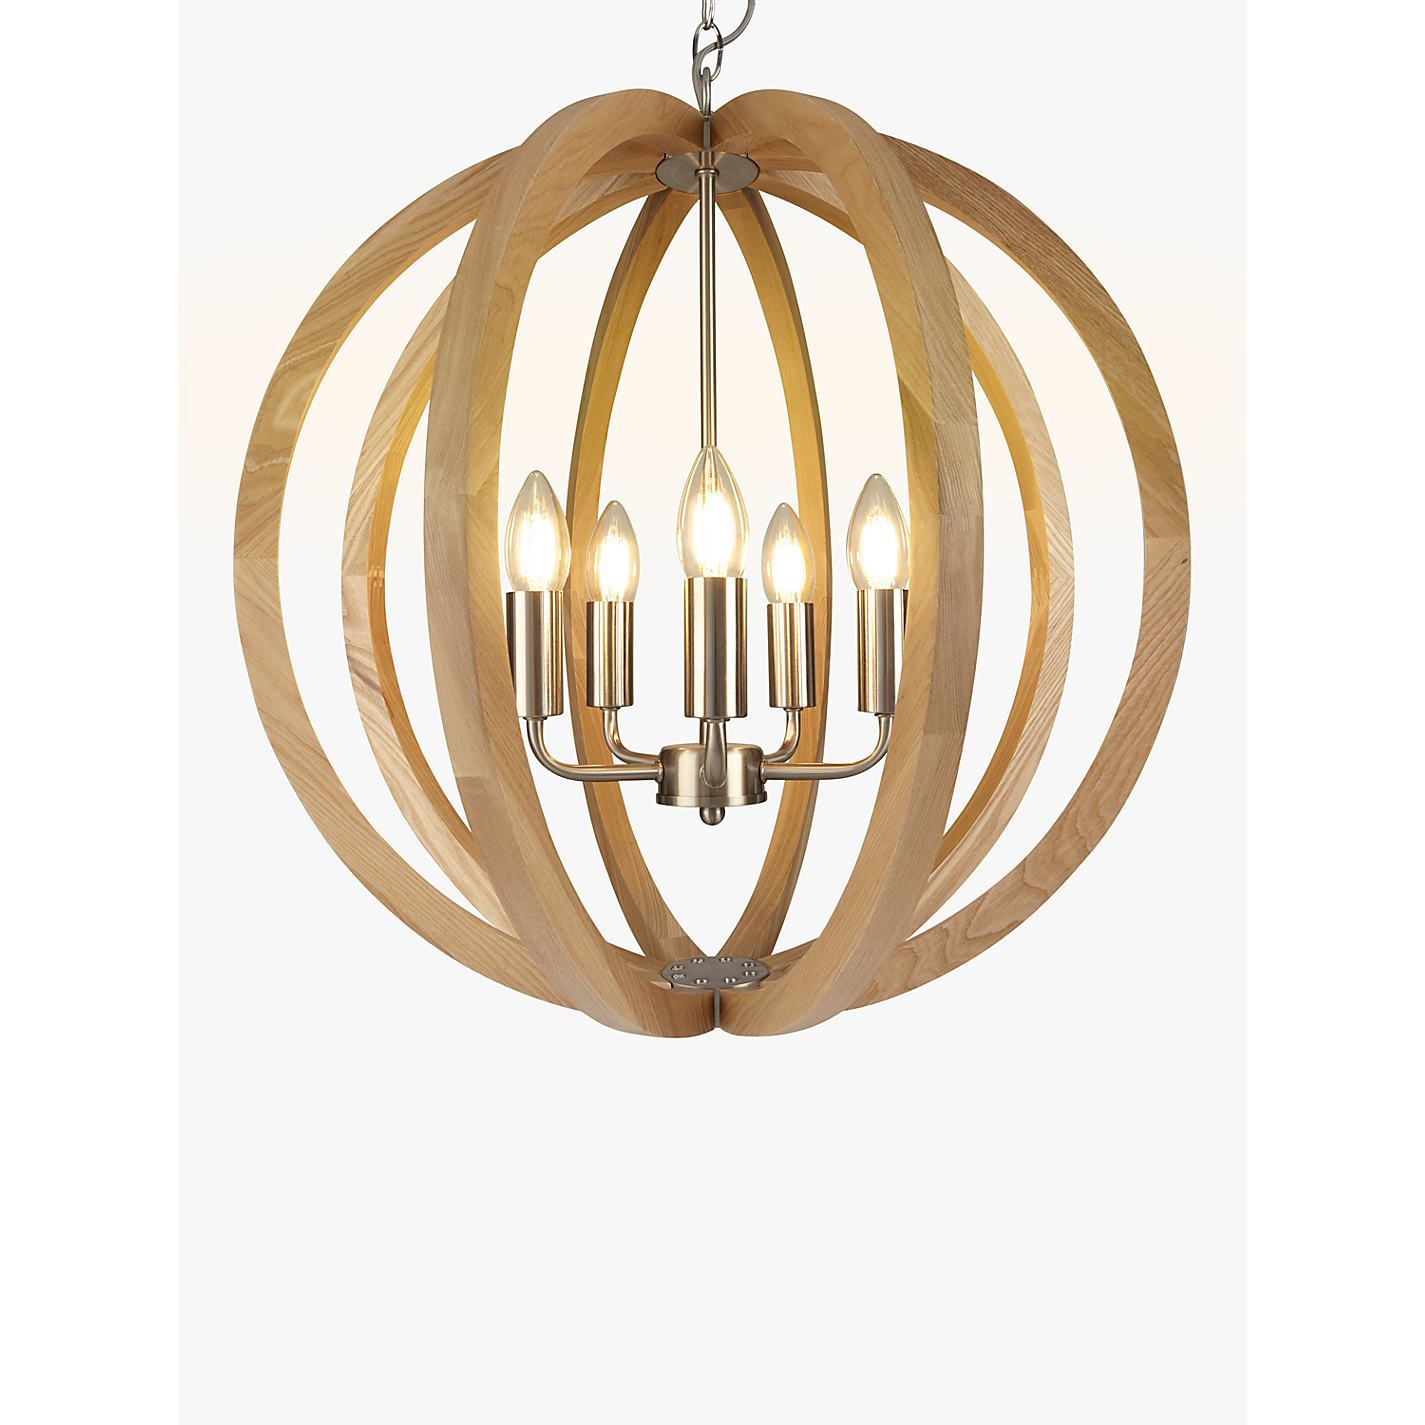 Buy john lewis lars ceiling light john lewis buy john lewis lars ceiling light online at johnlewis mozeypictures Images